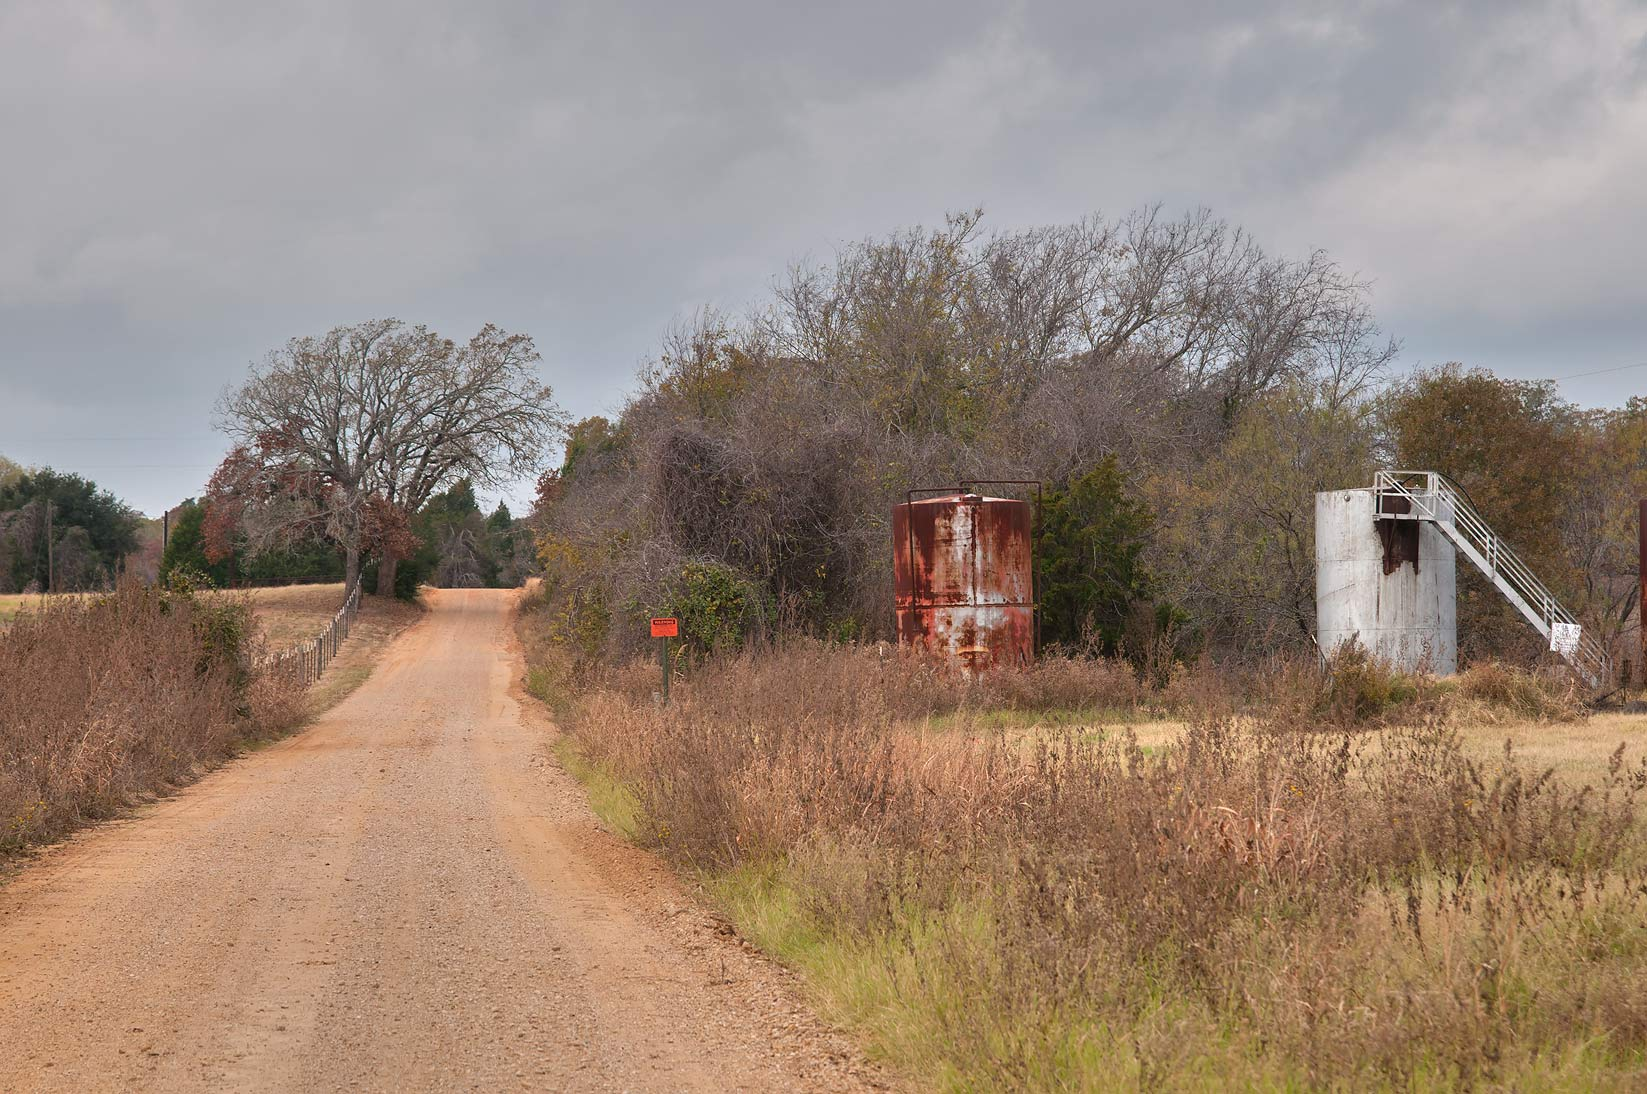 Oil cisterns at Rd. 237 near Cameron. Texas